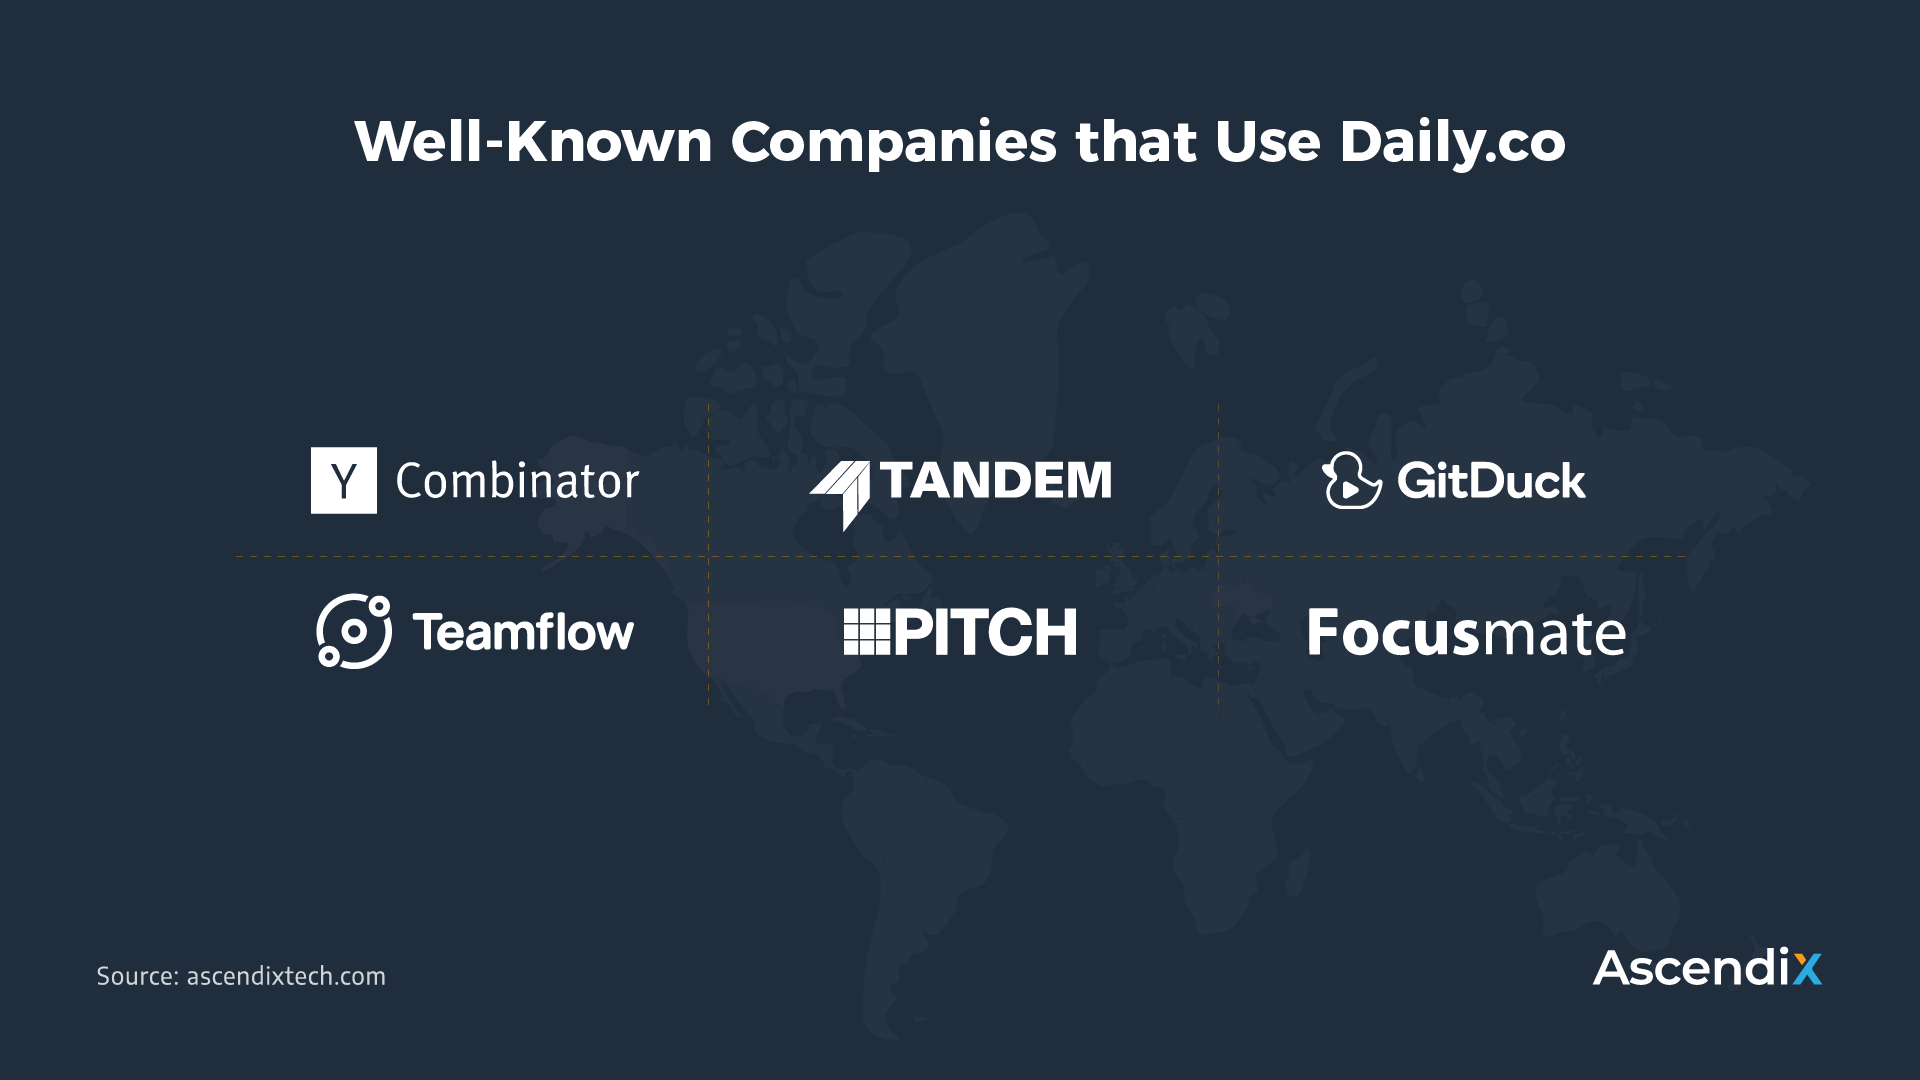 Well-Known Companies that Use Daily.co